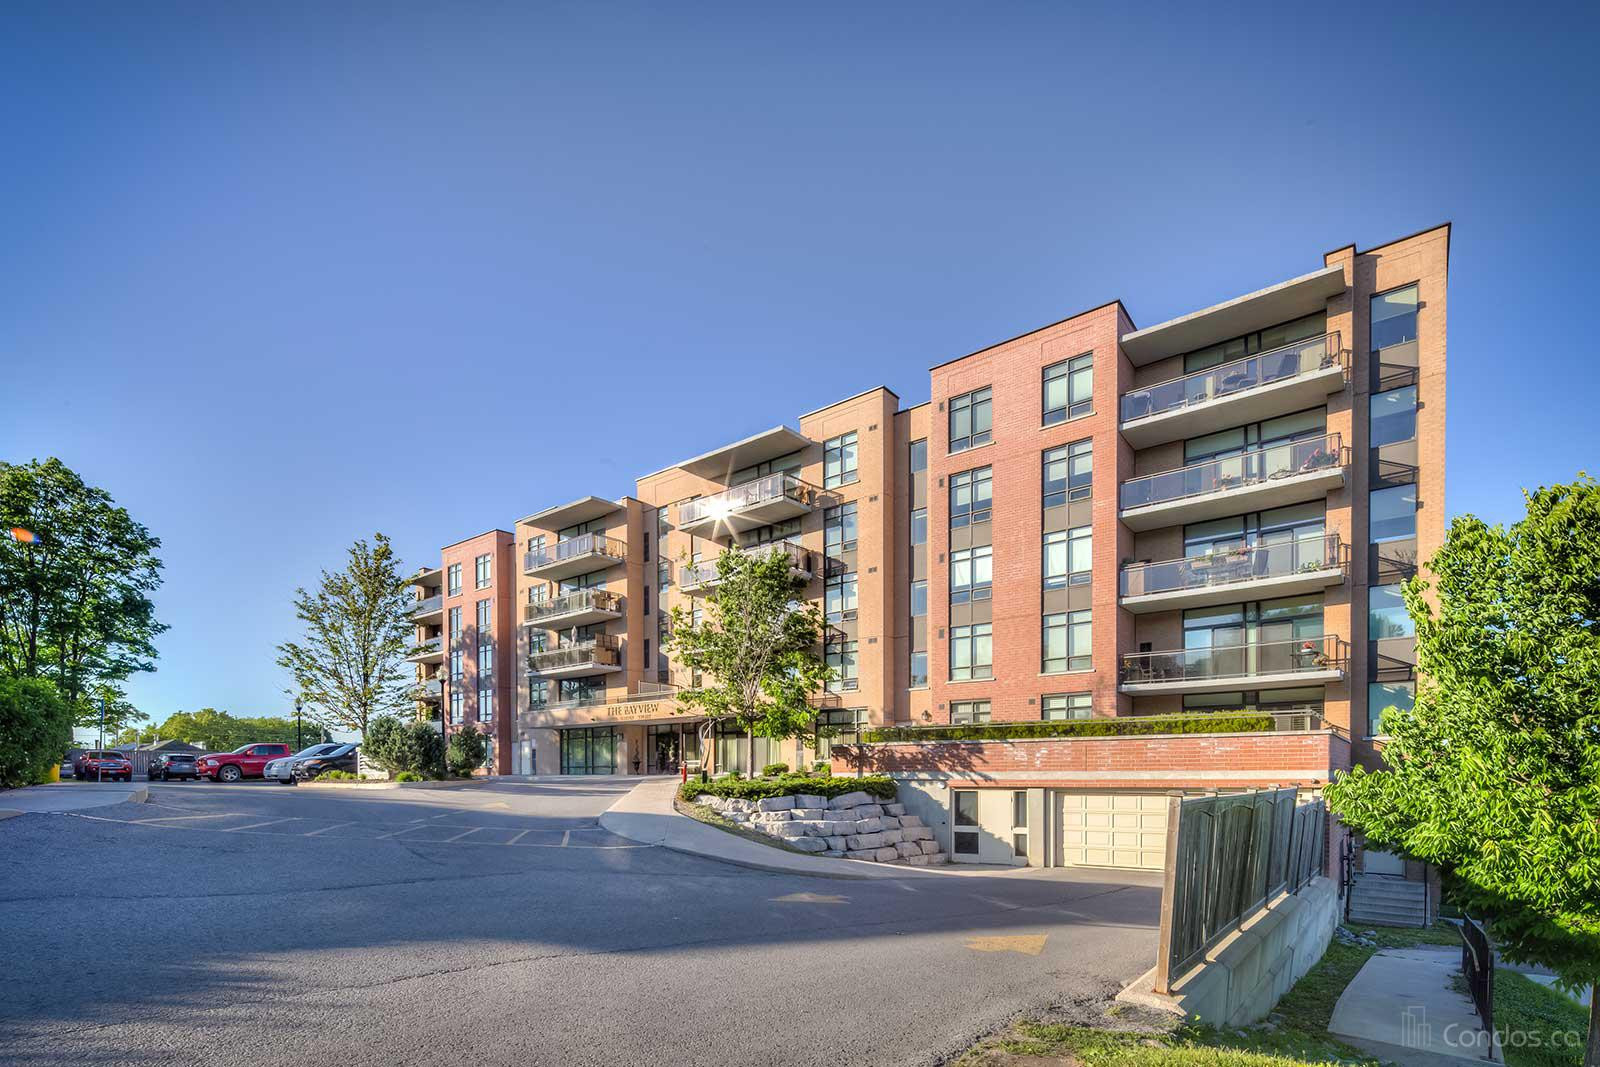 The Bayview Condo at 171 Shanly St, Scugog 0